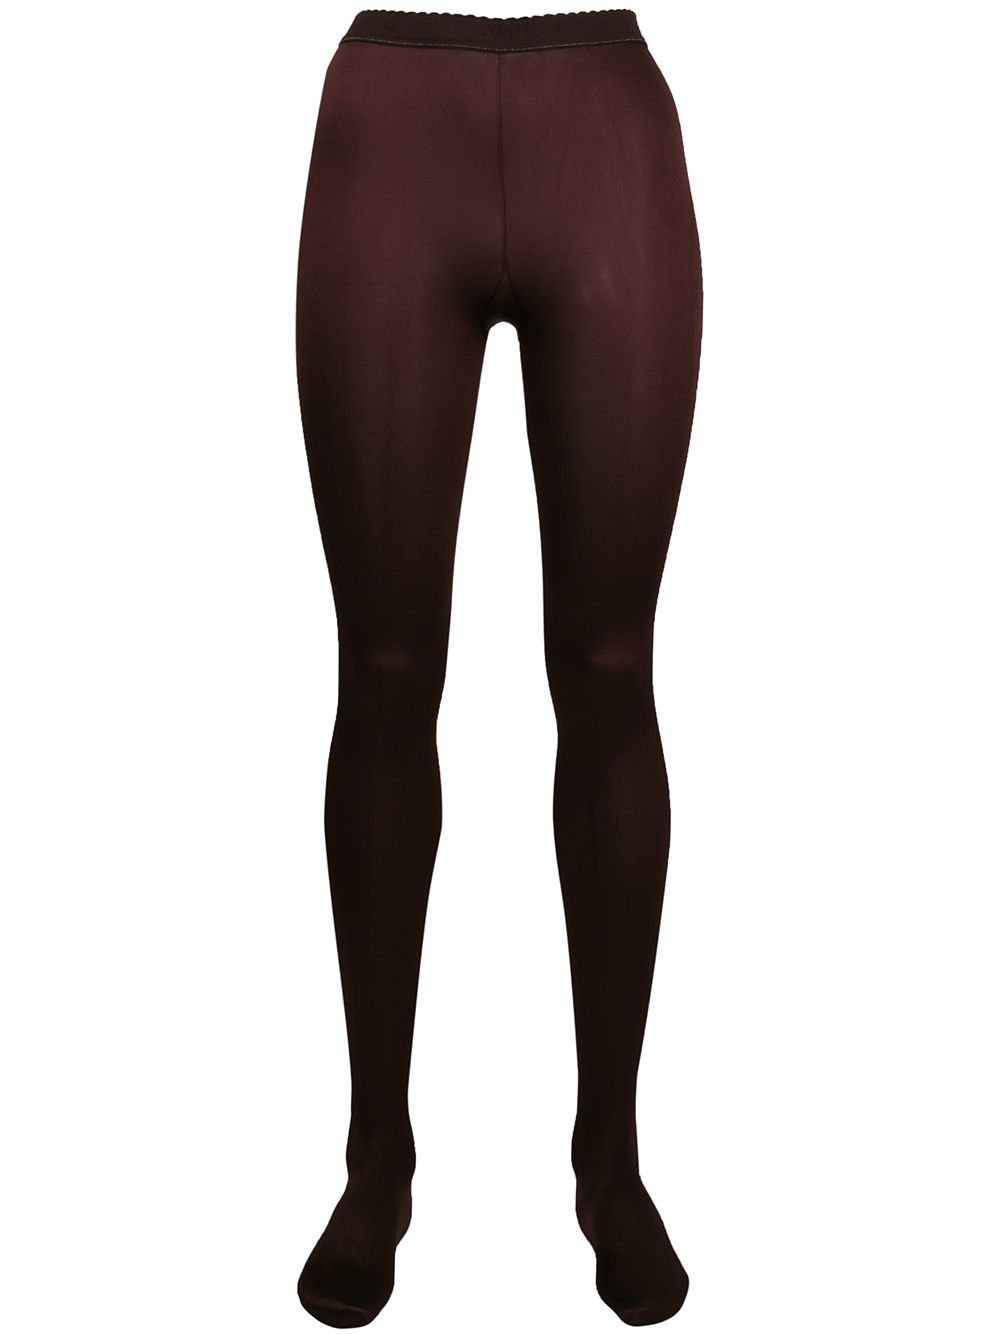 Wolford Deluxe Tights